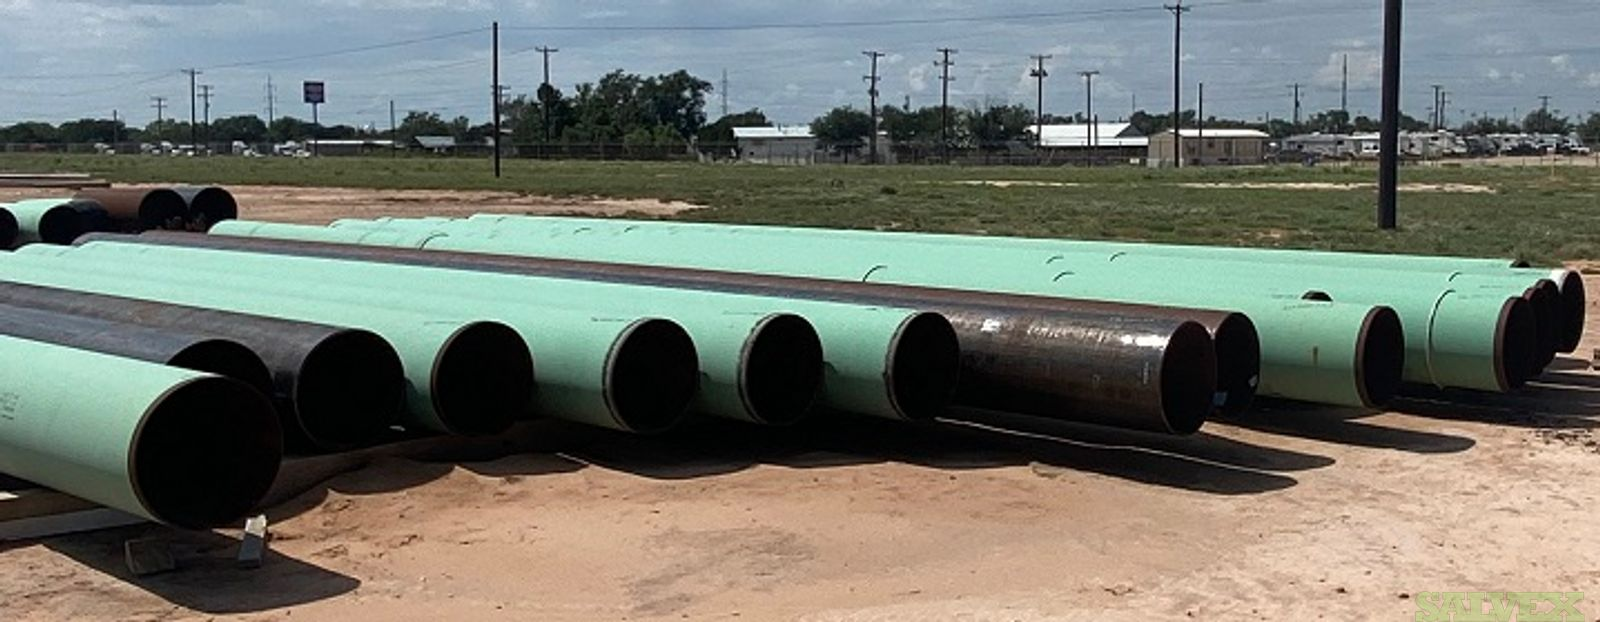 1 - 24 Structural DRL Line Pipe (3,569 Feet / 169 Metric Tons)